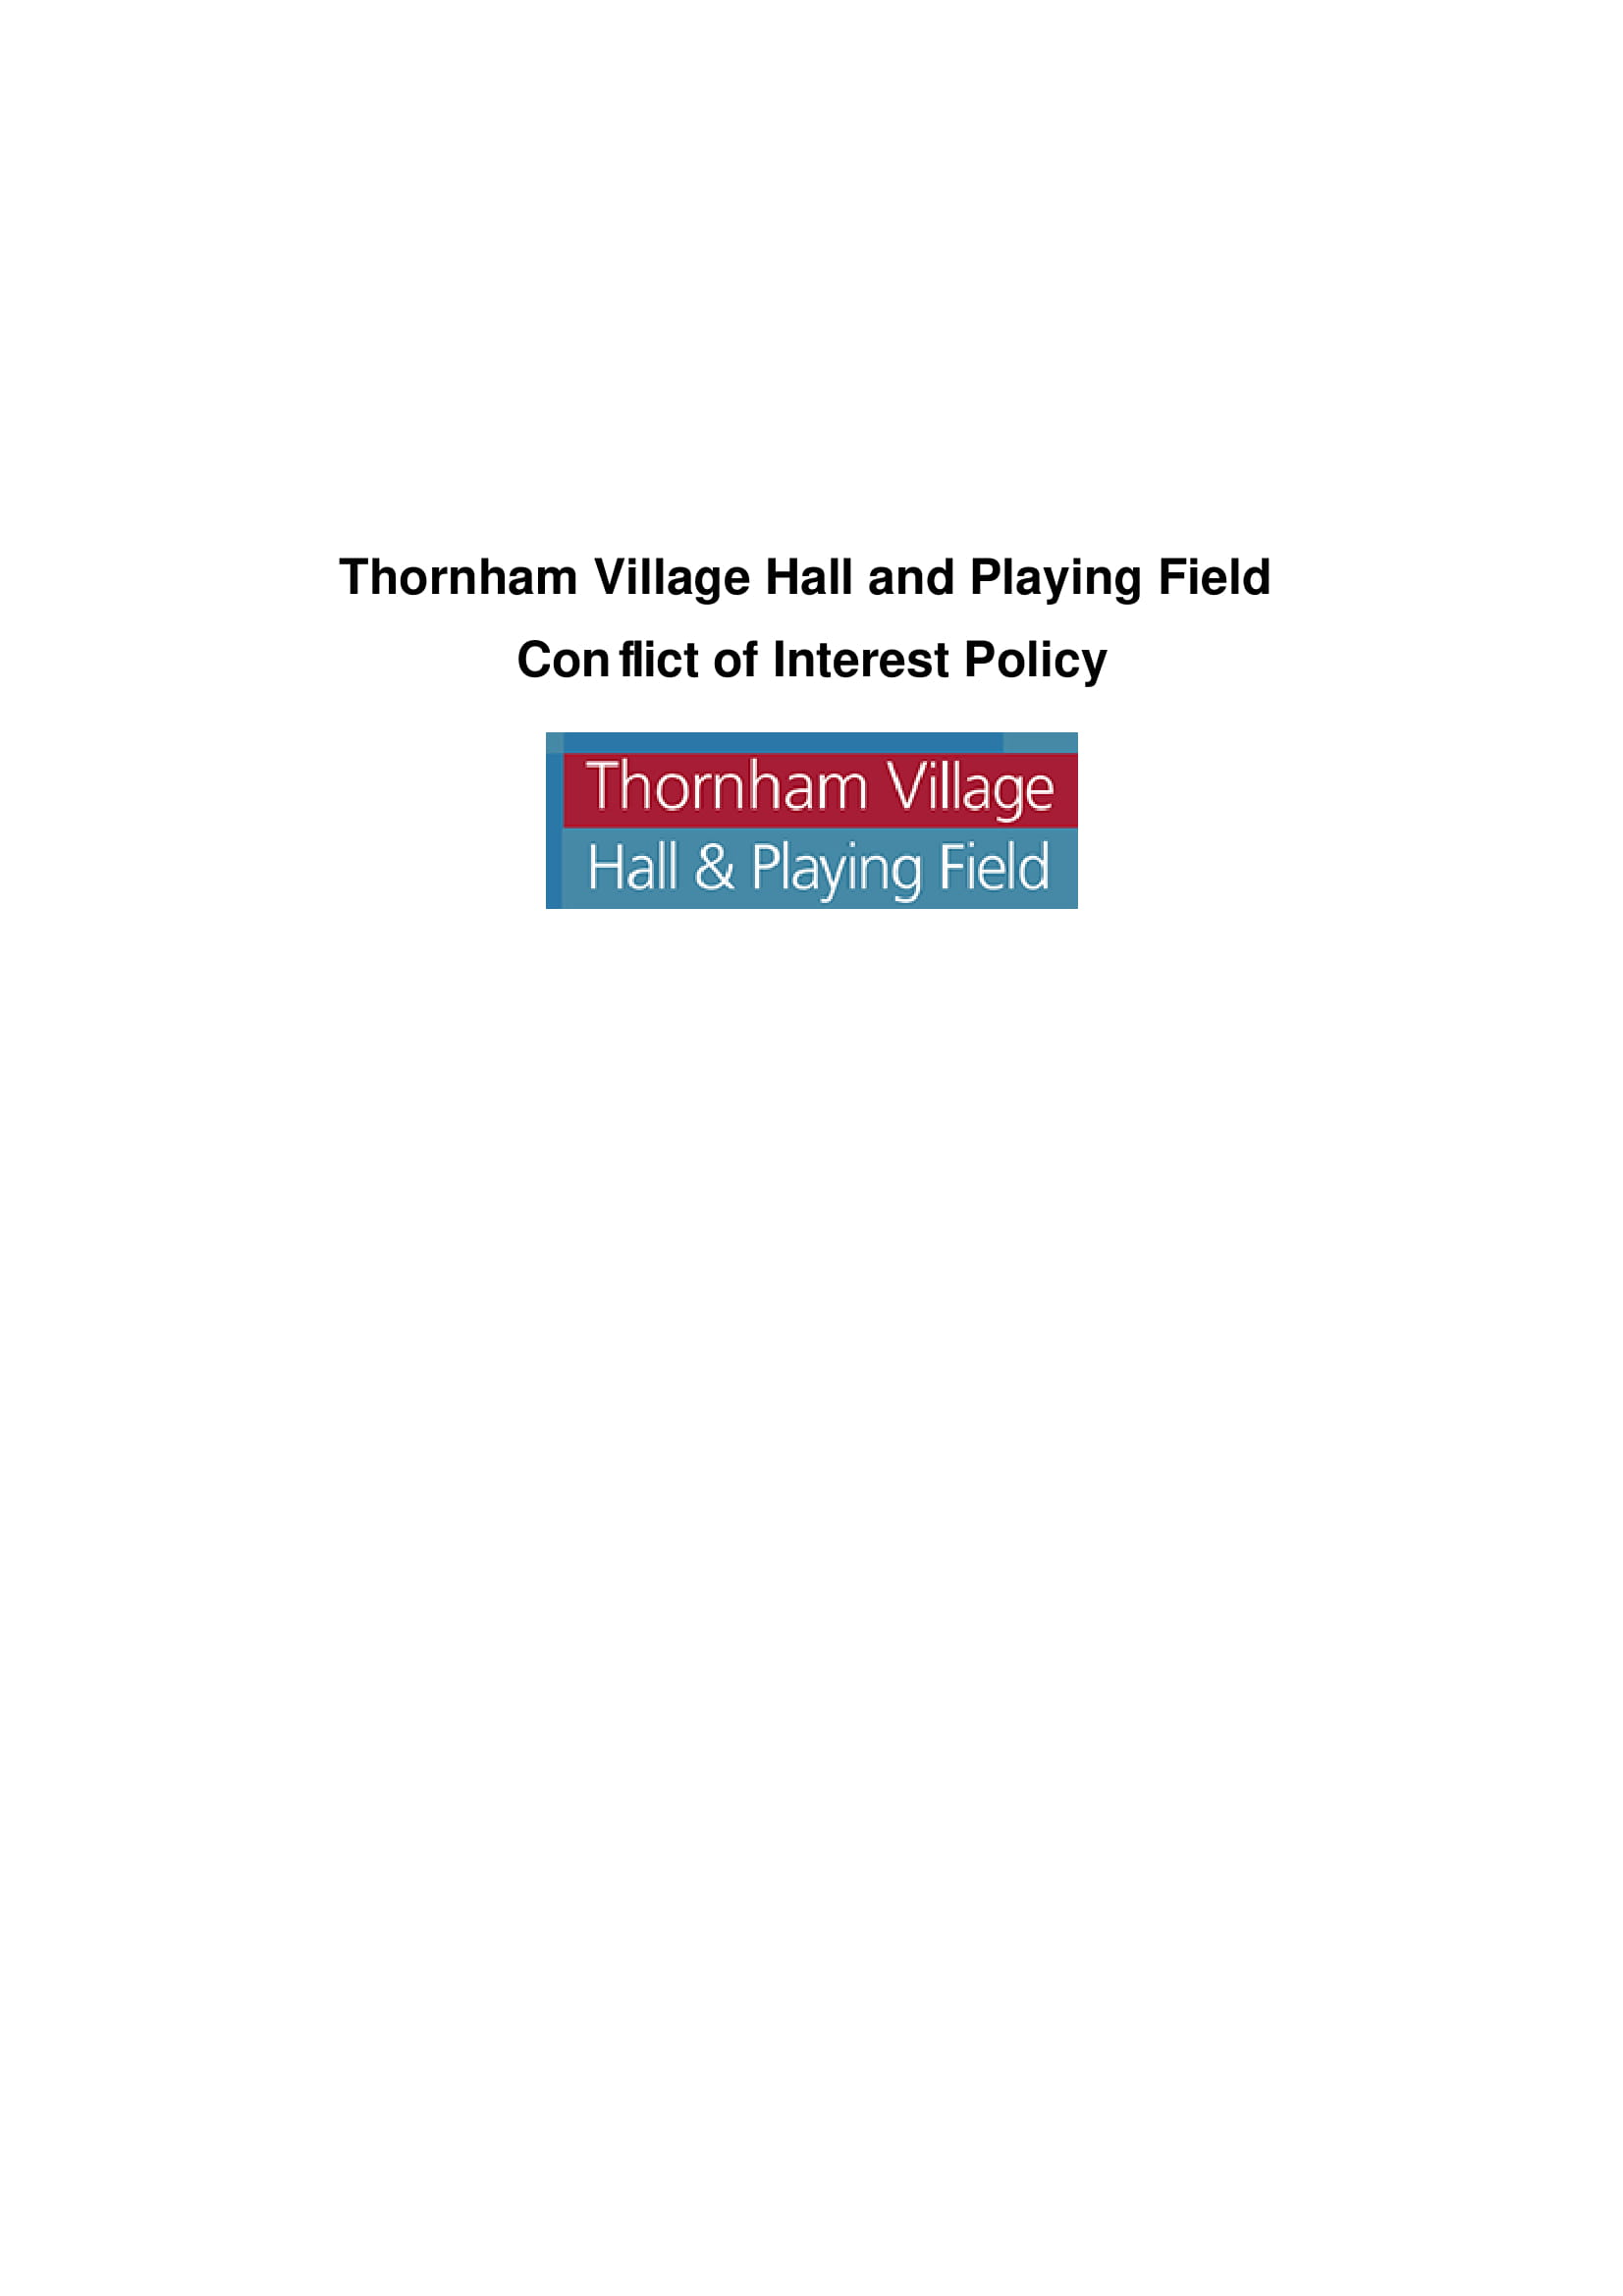 14 Conflict Of Interest Policy Examples Pdf